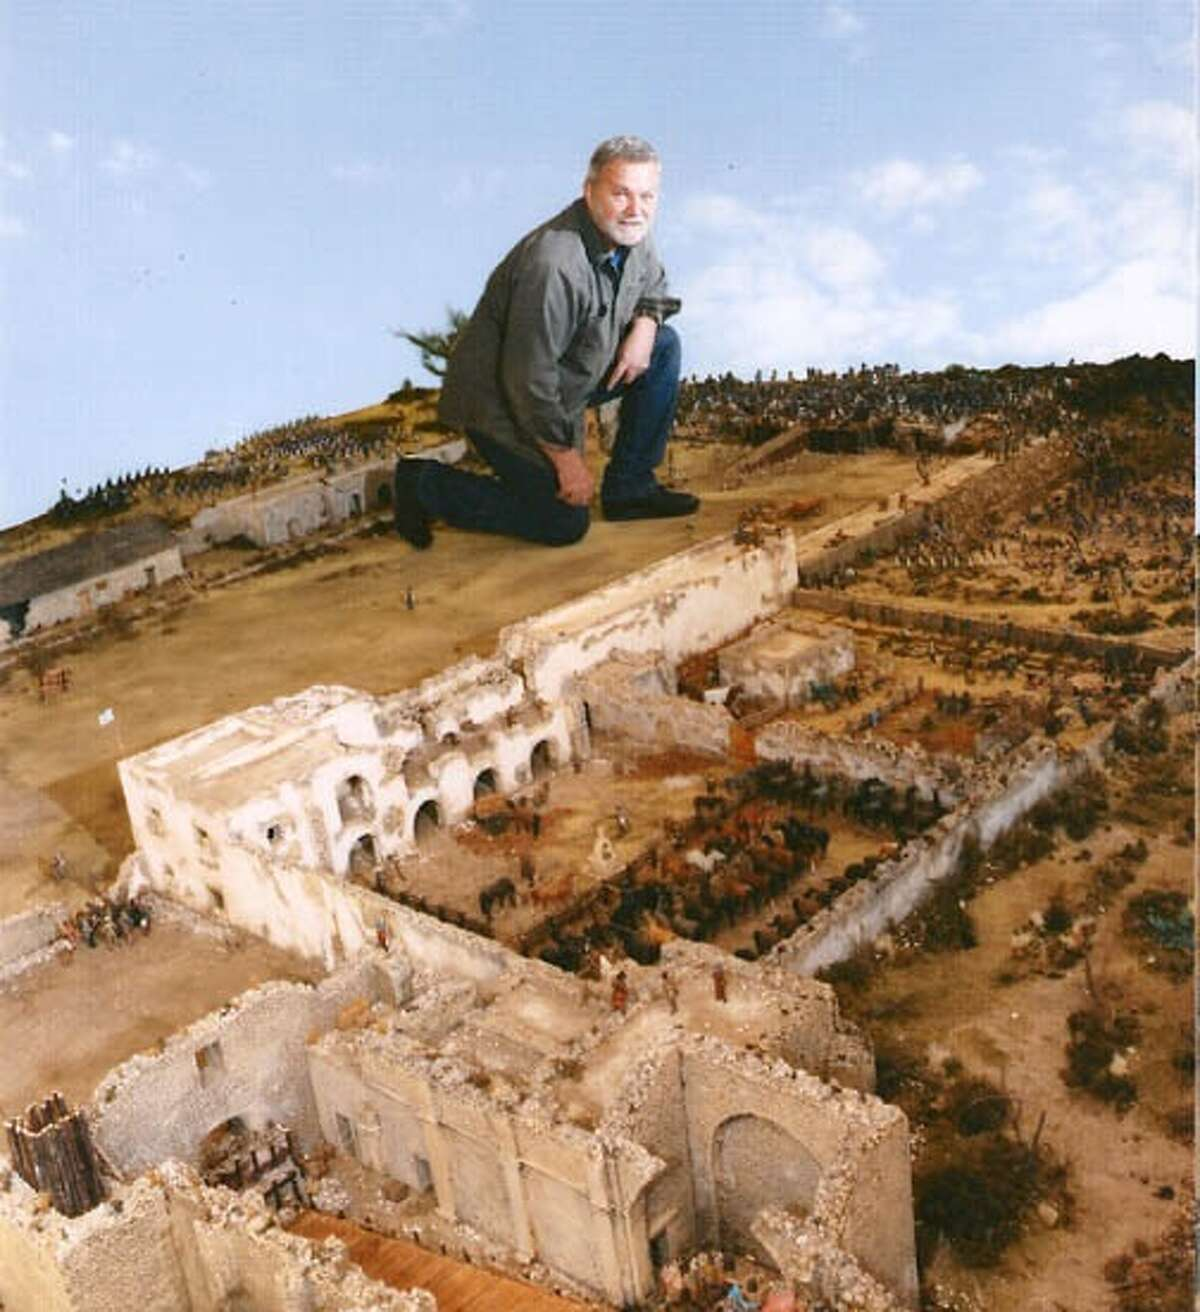 Thomas Feely said he spent countless hours over 12 years building a 24-foot-by-14-foot Alamo diorama that's stored in Pennsylvania.